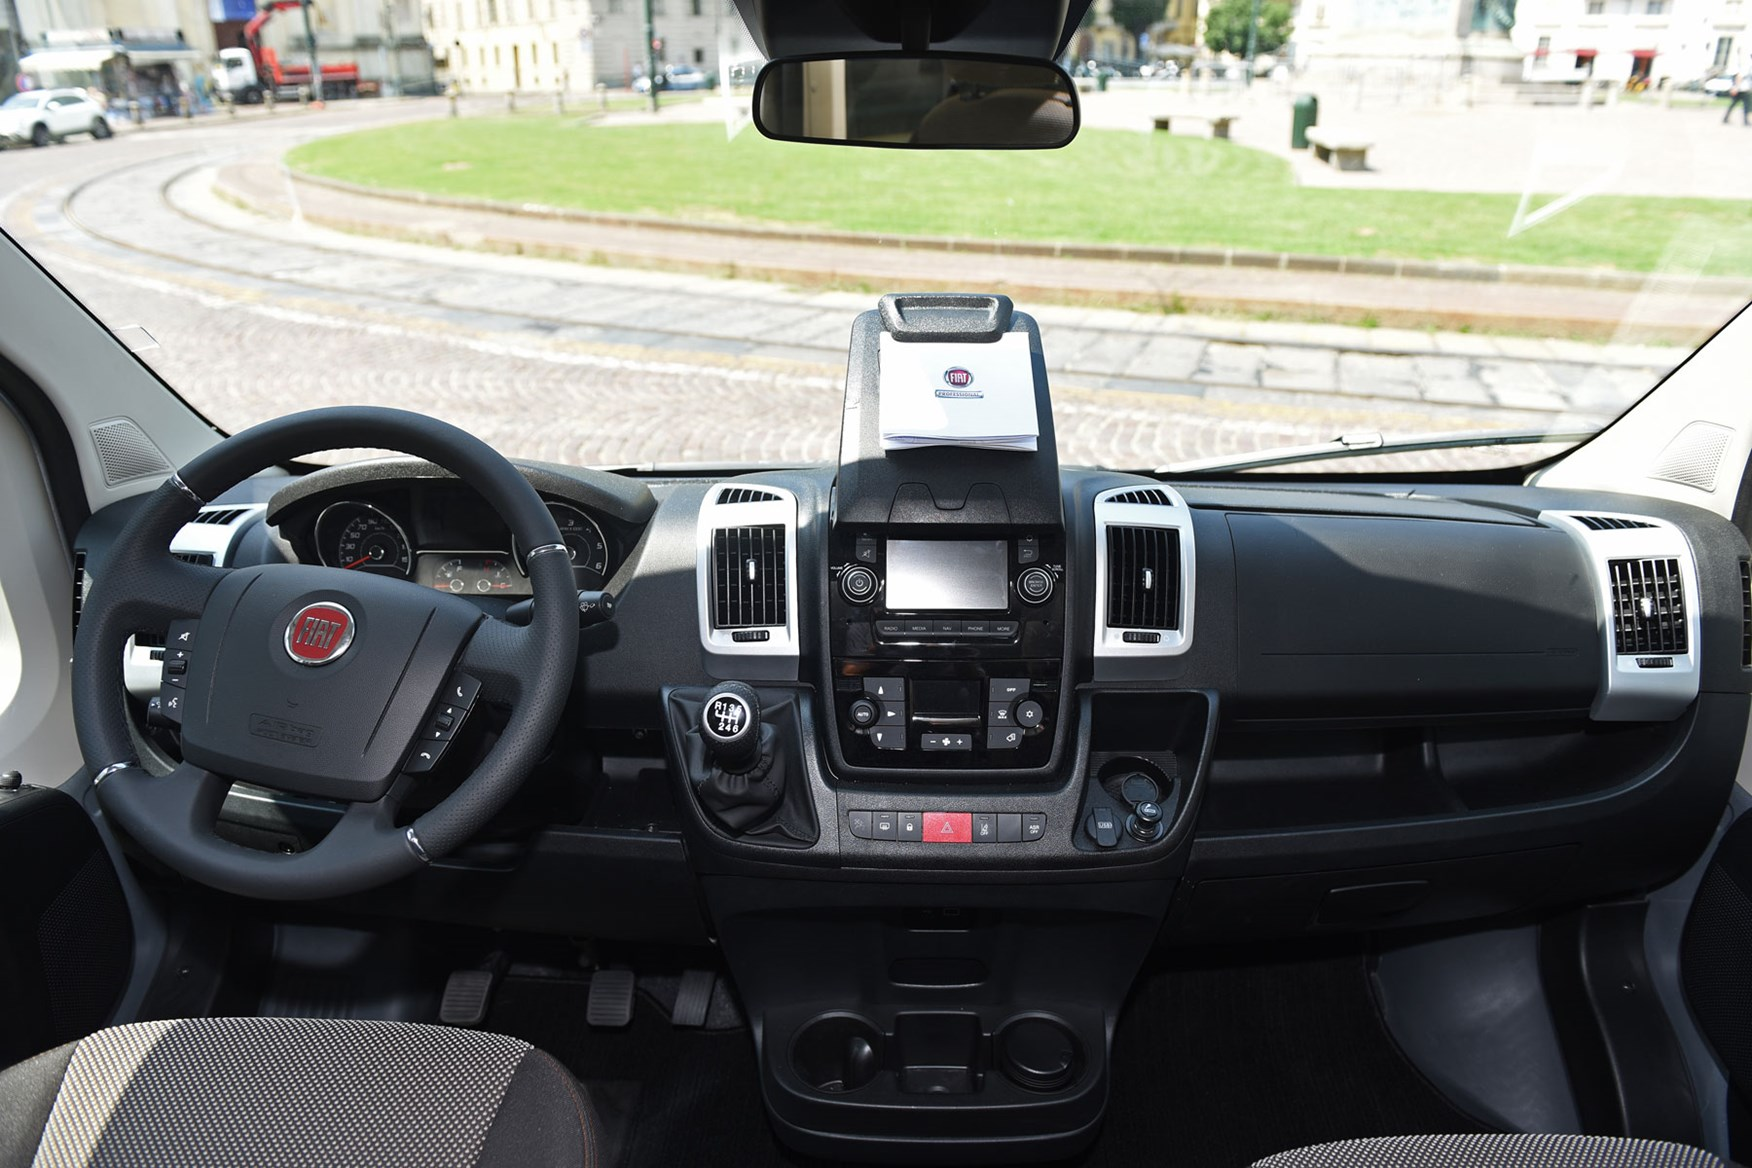 Fiat Ducato review - 2019 MY20 cab interior, wide view showing whole dashboard, tablet holder, steering wheel not straight